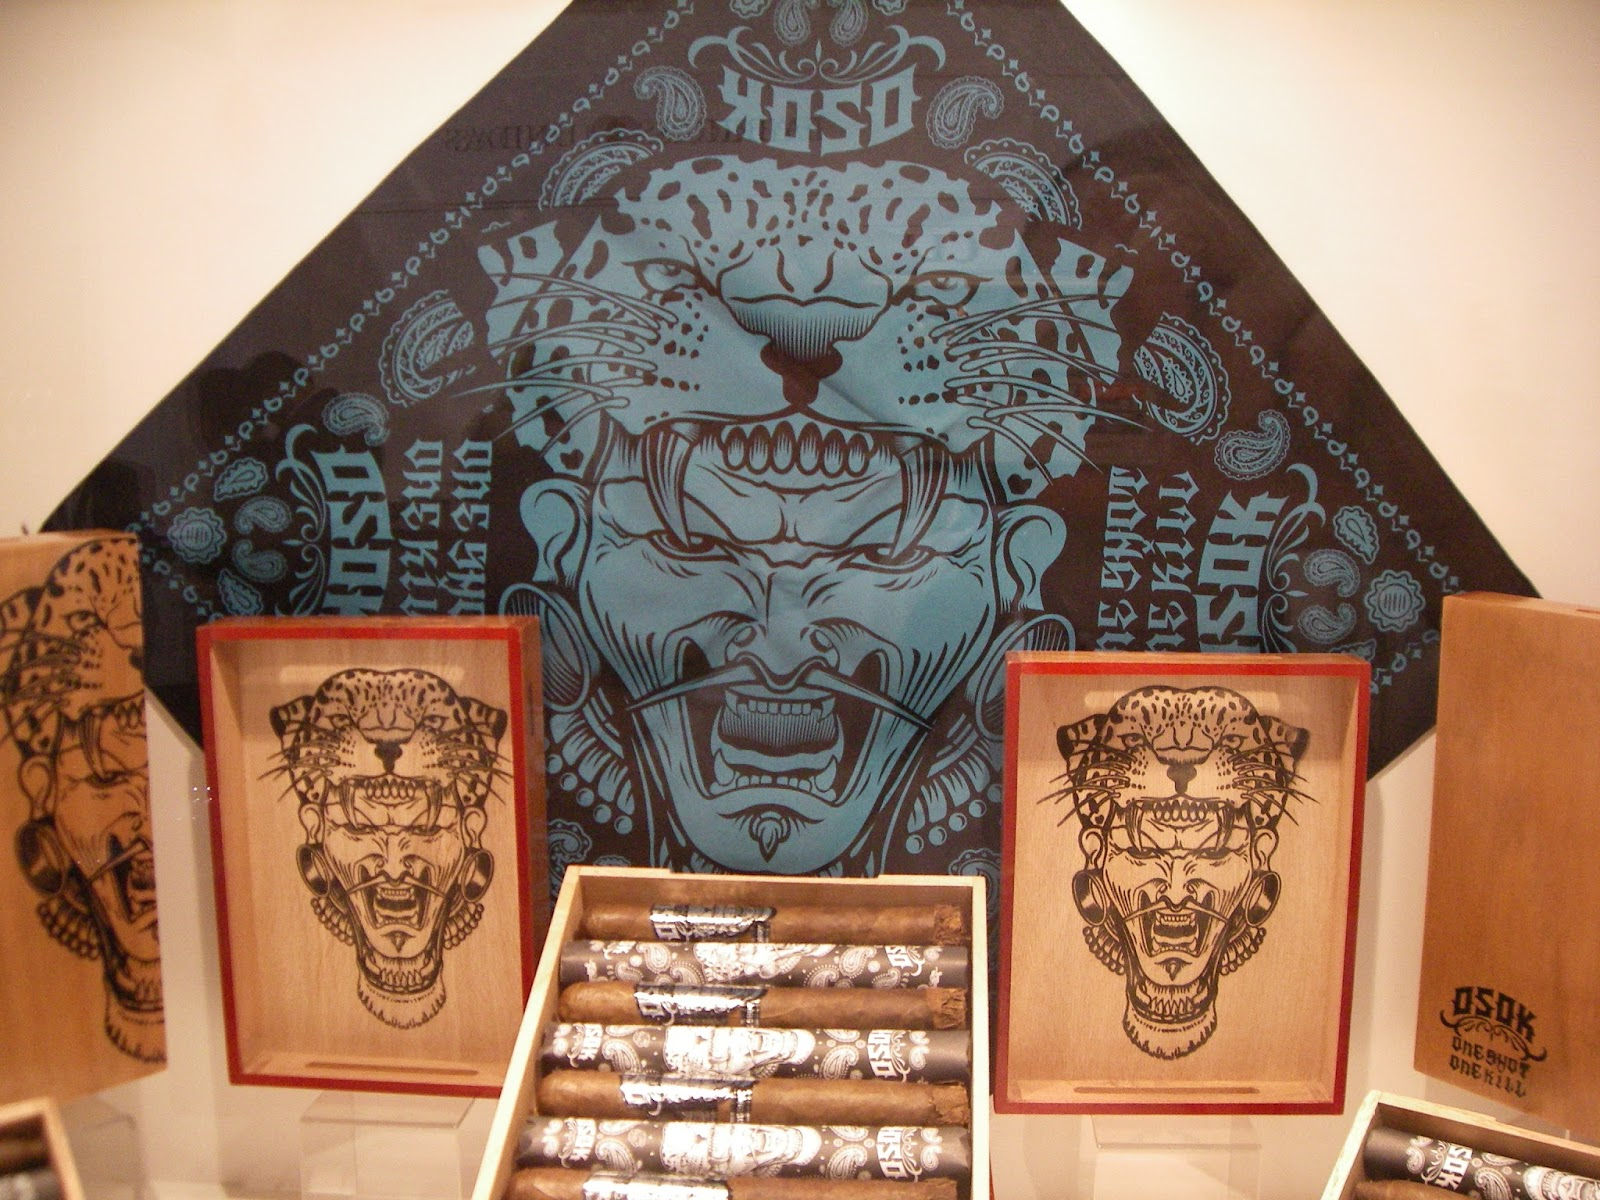 Cigar News: Edgar Hoill to Attend TAA; Plans Event Schedule for 2016